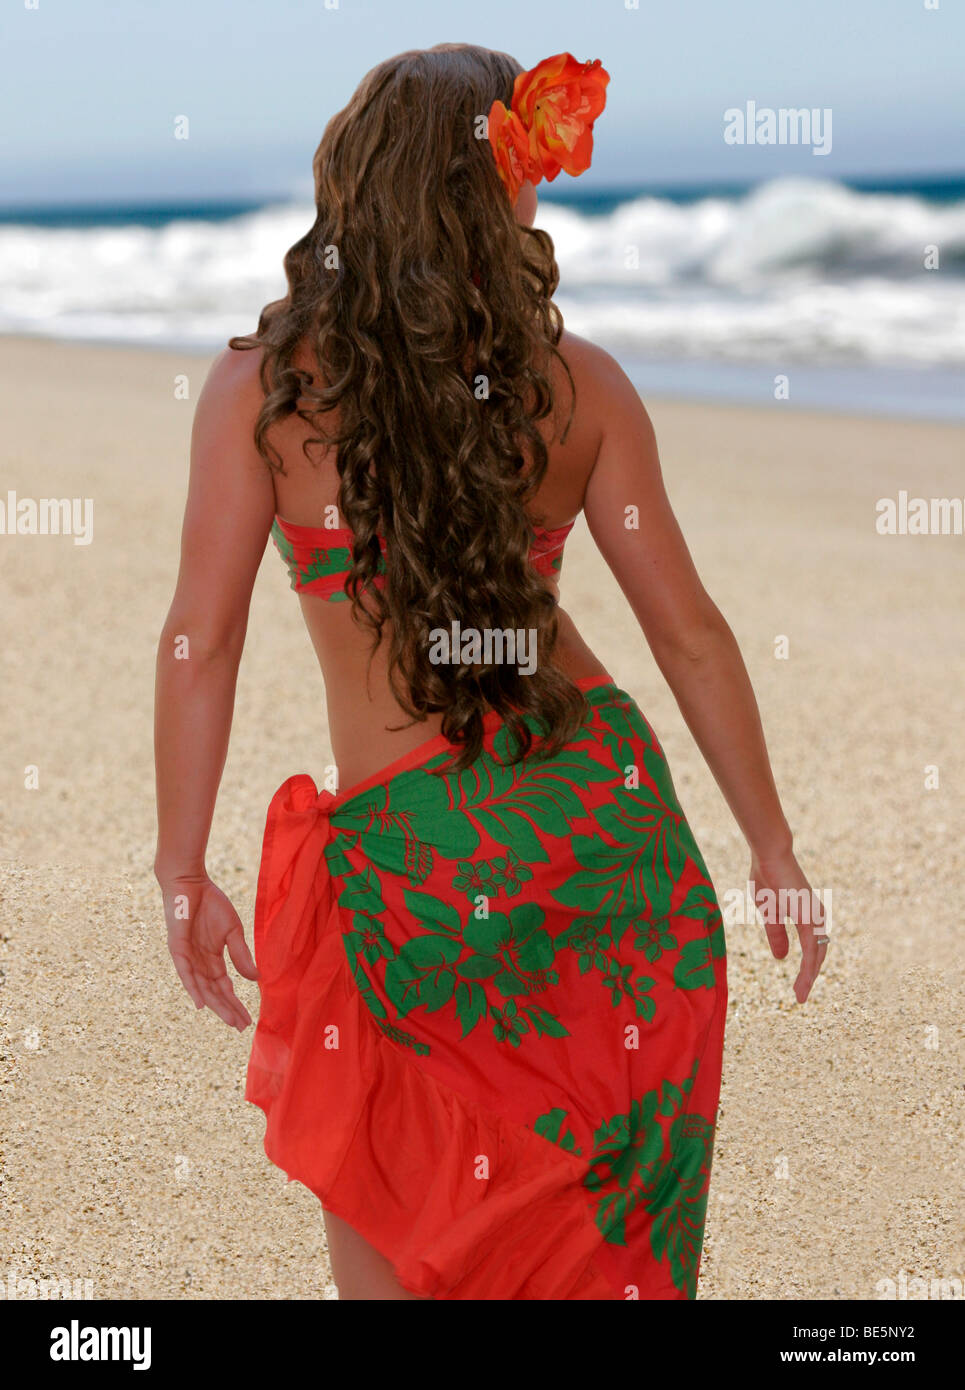 Polynesian hula dancer on the beach - Stock Image